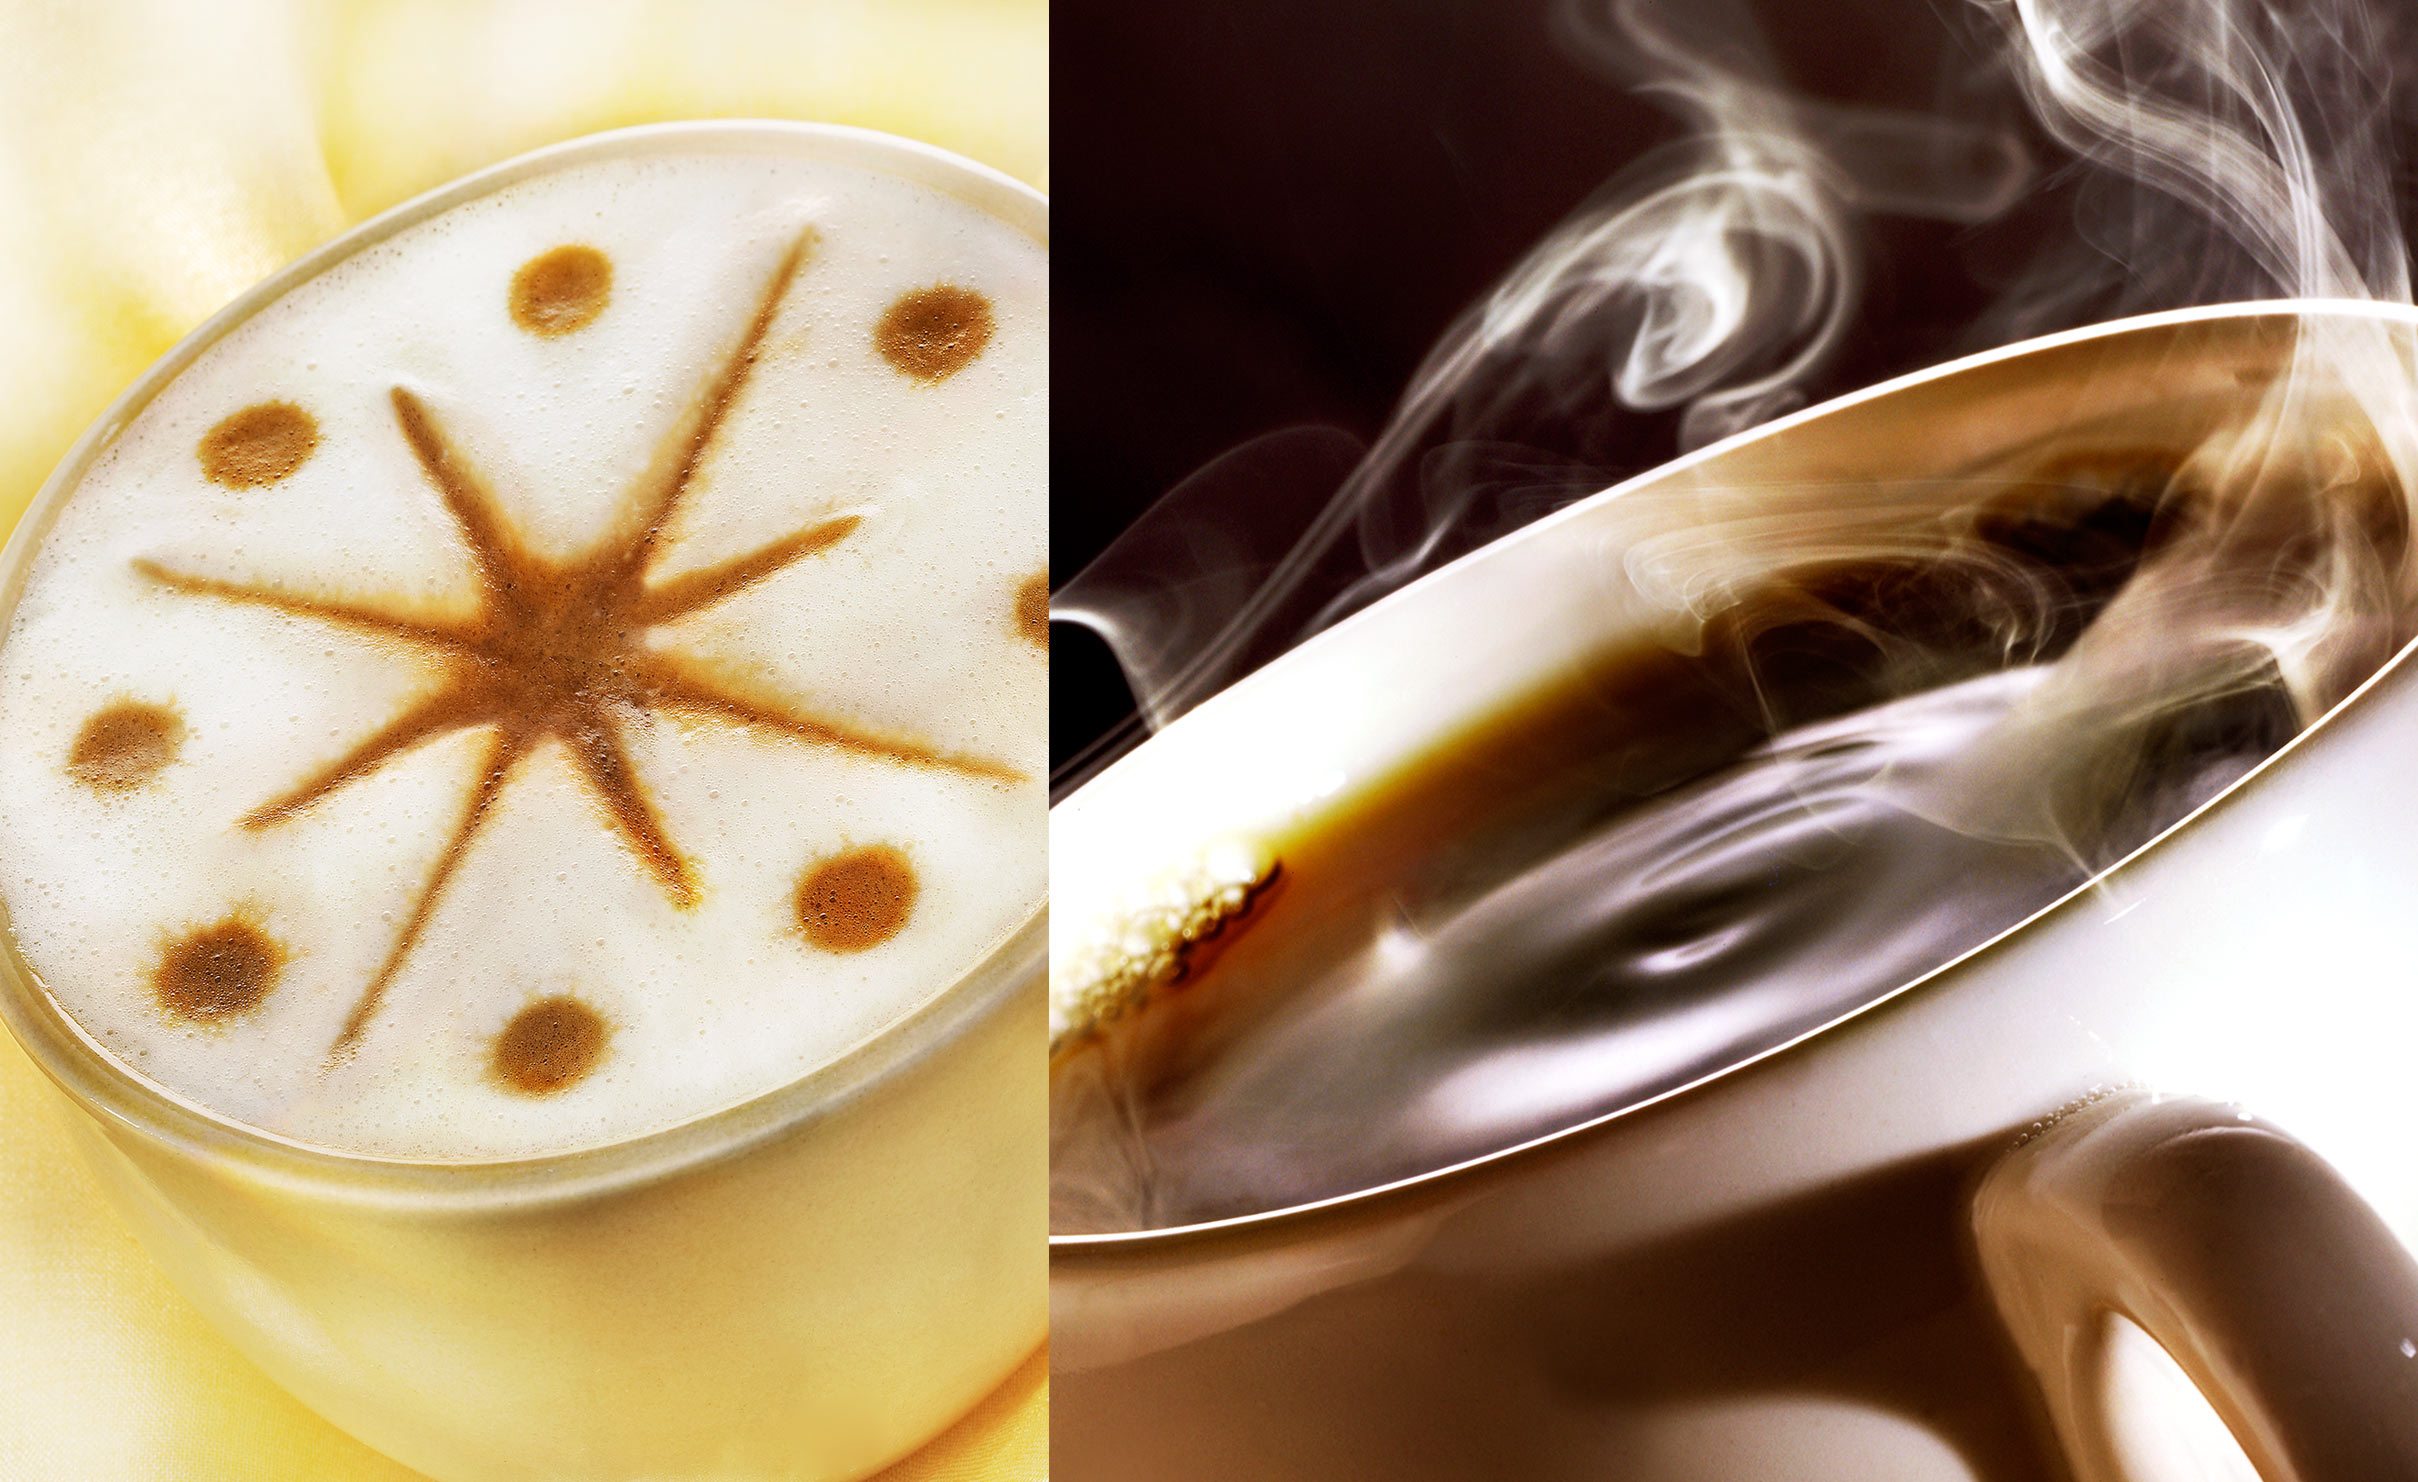 star Latte and Steaming Hot cup of Coffee